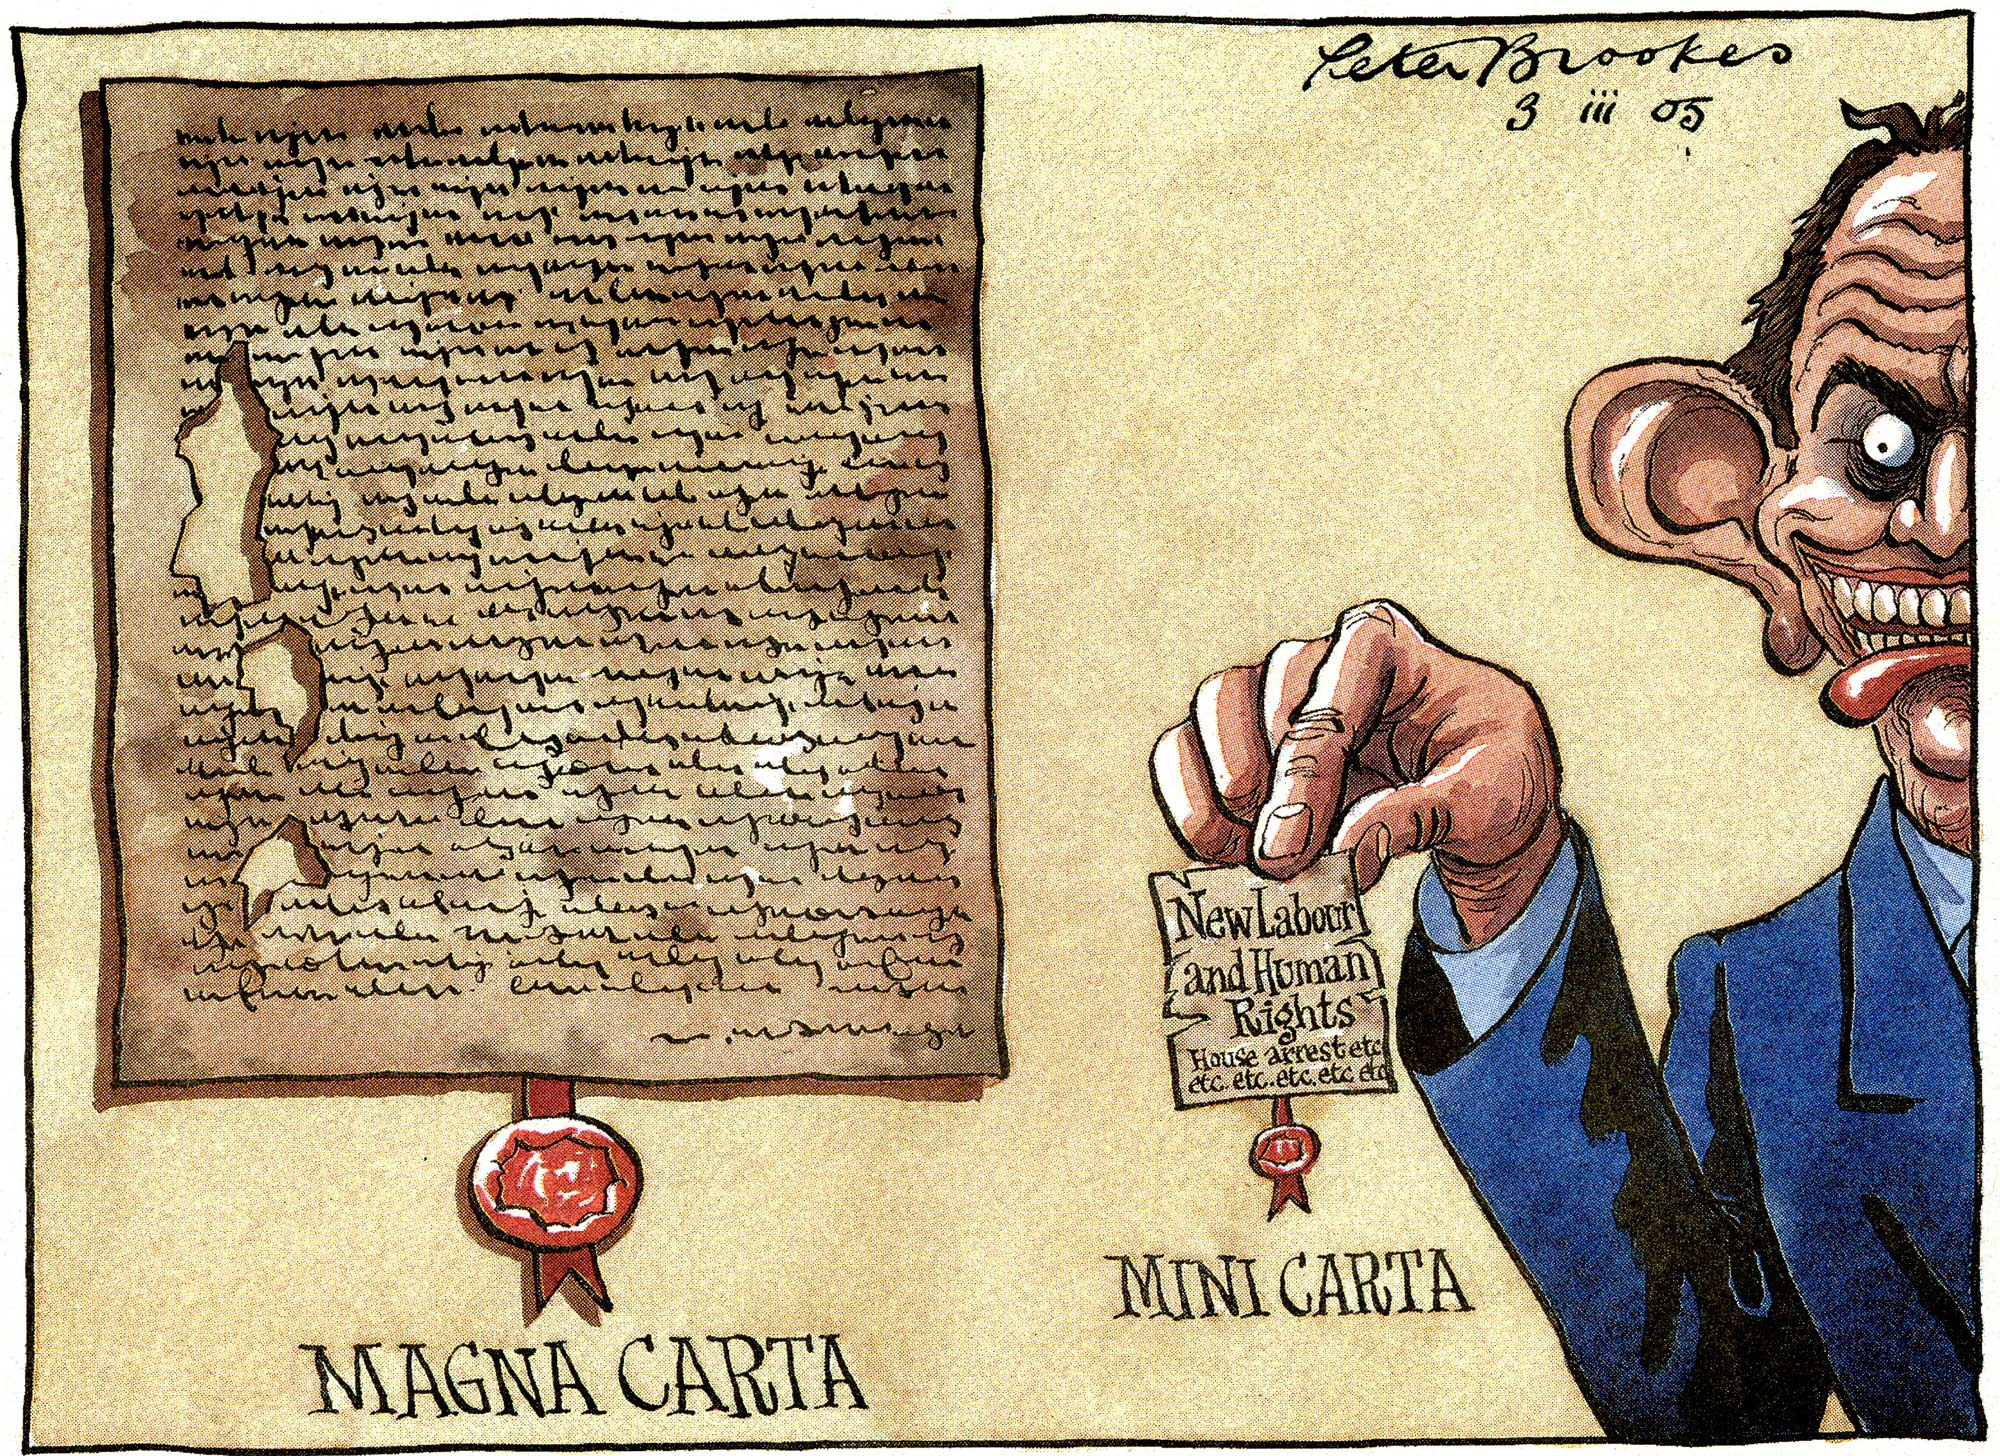 Cartoon entitled 'Magna Carta, Mini Carta' and featuring Tony Blair